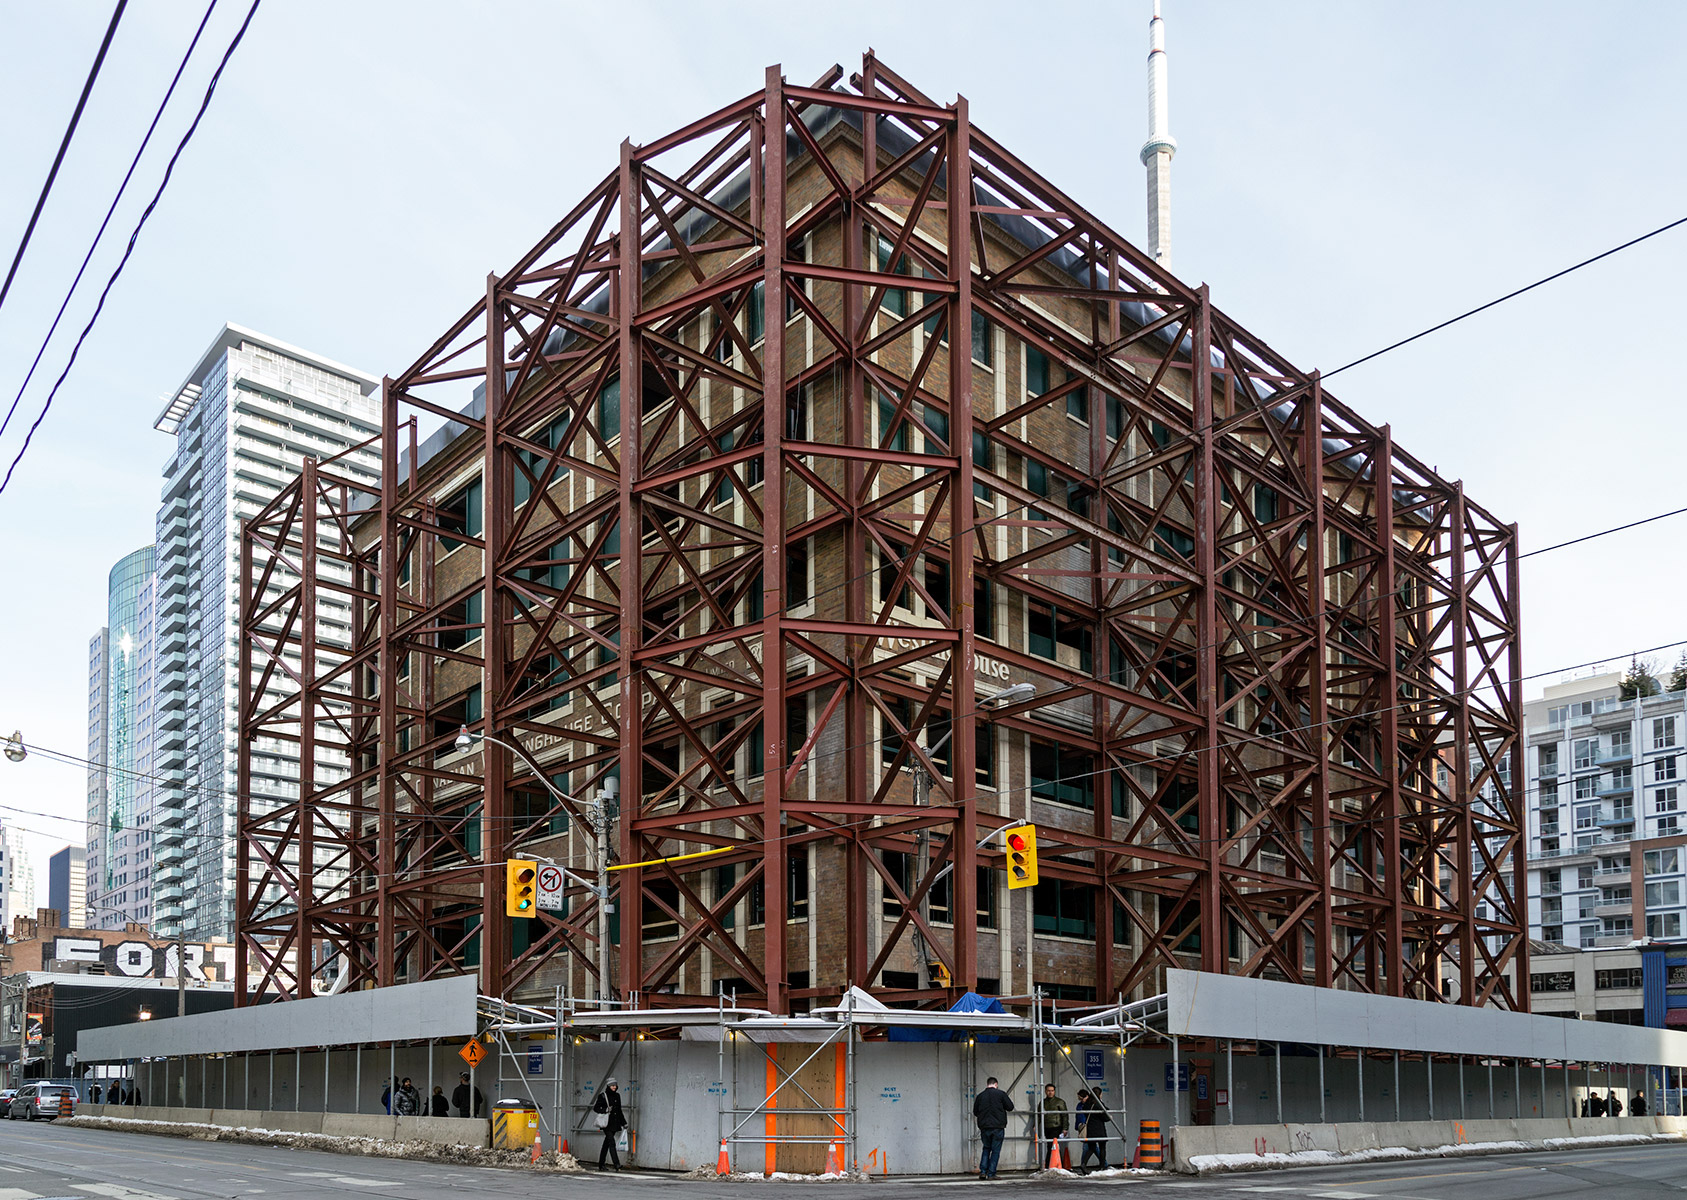 20160306. The 1927 Canadian Westinghouse Building has donned an